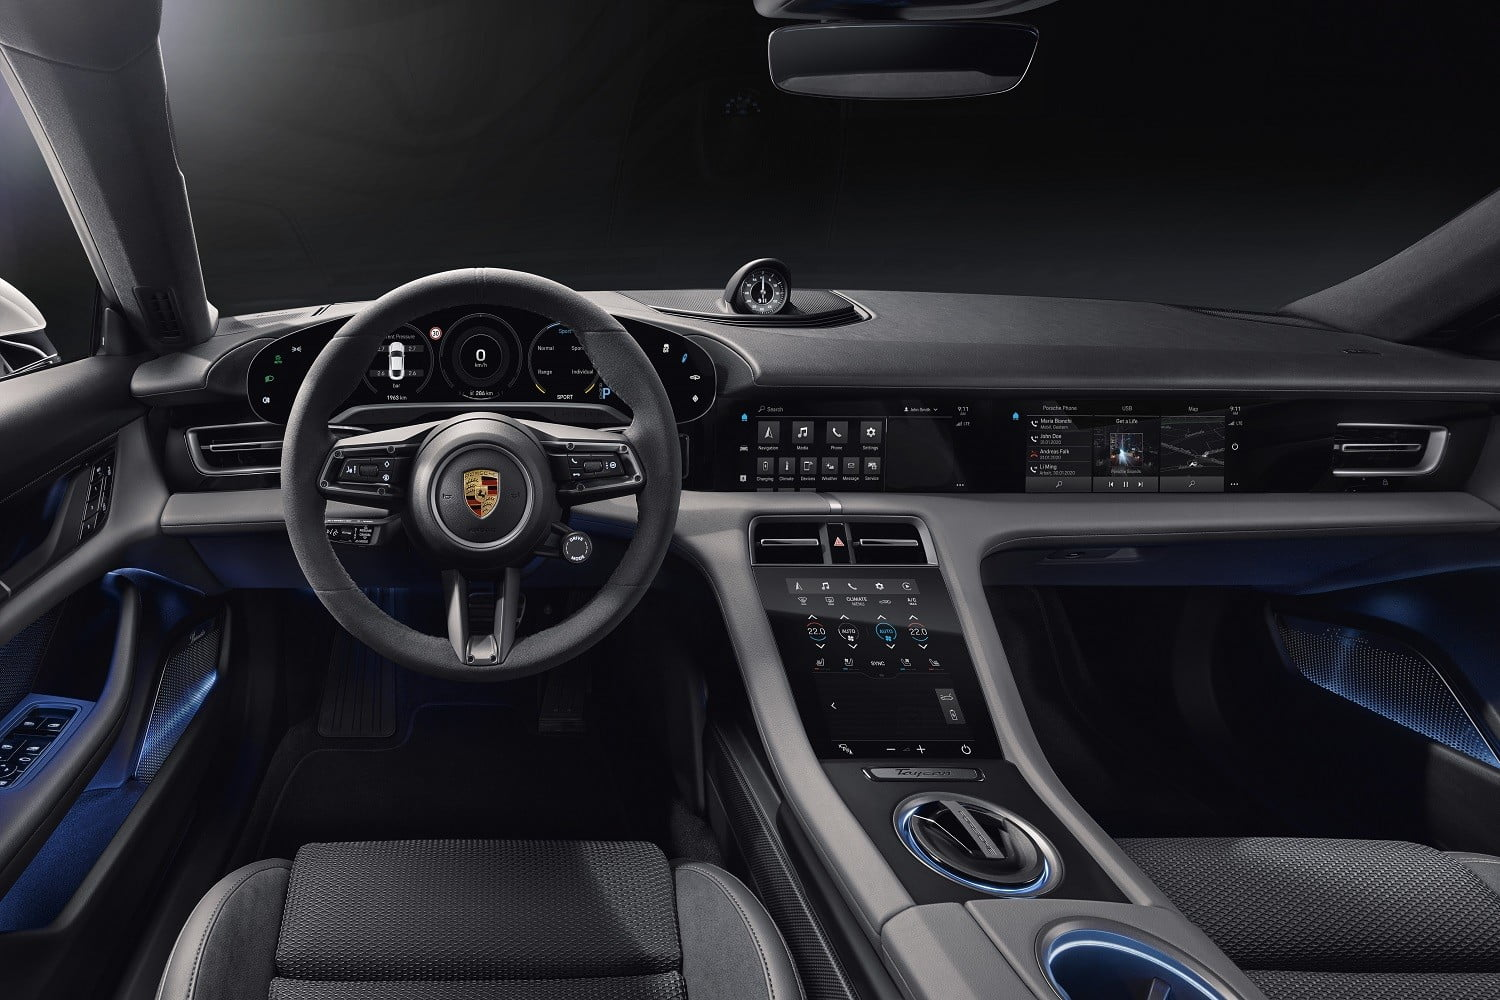 The 2020 Porsche Taycan EV has more screens than a 718 Boxster has cylinders